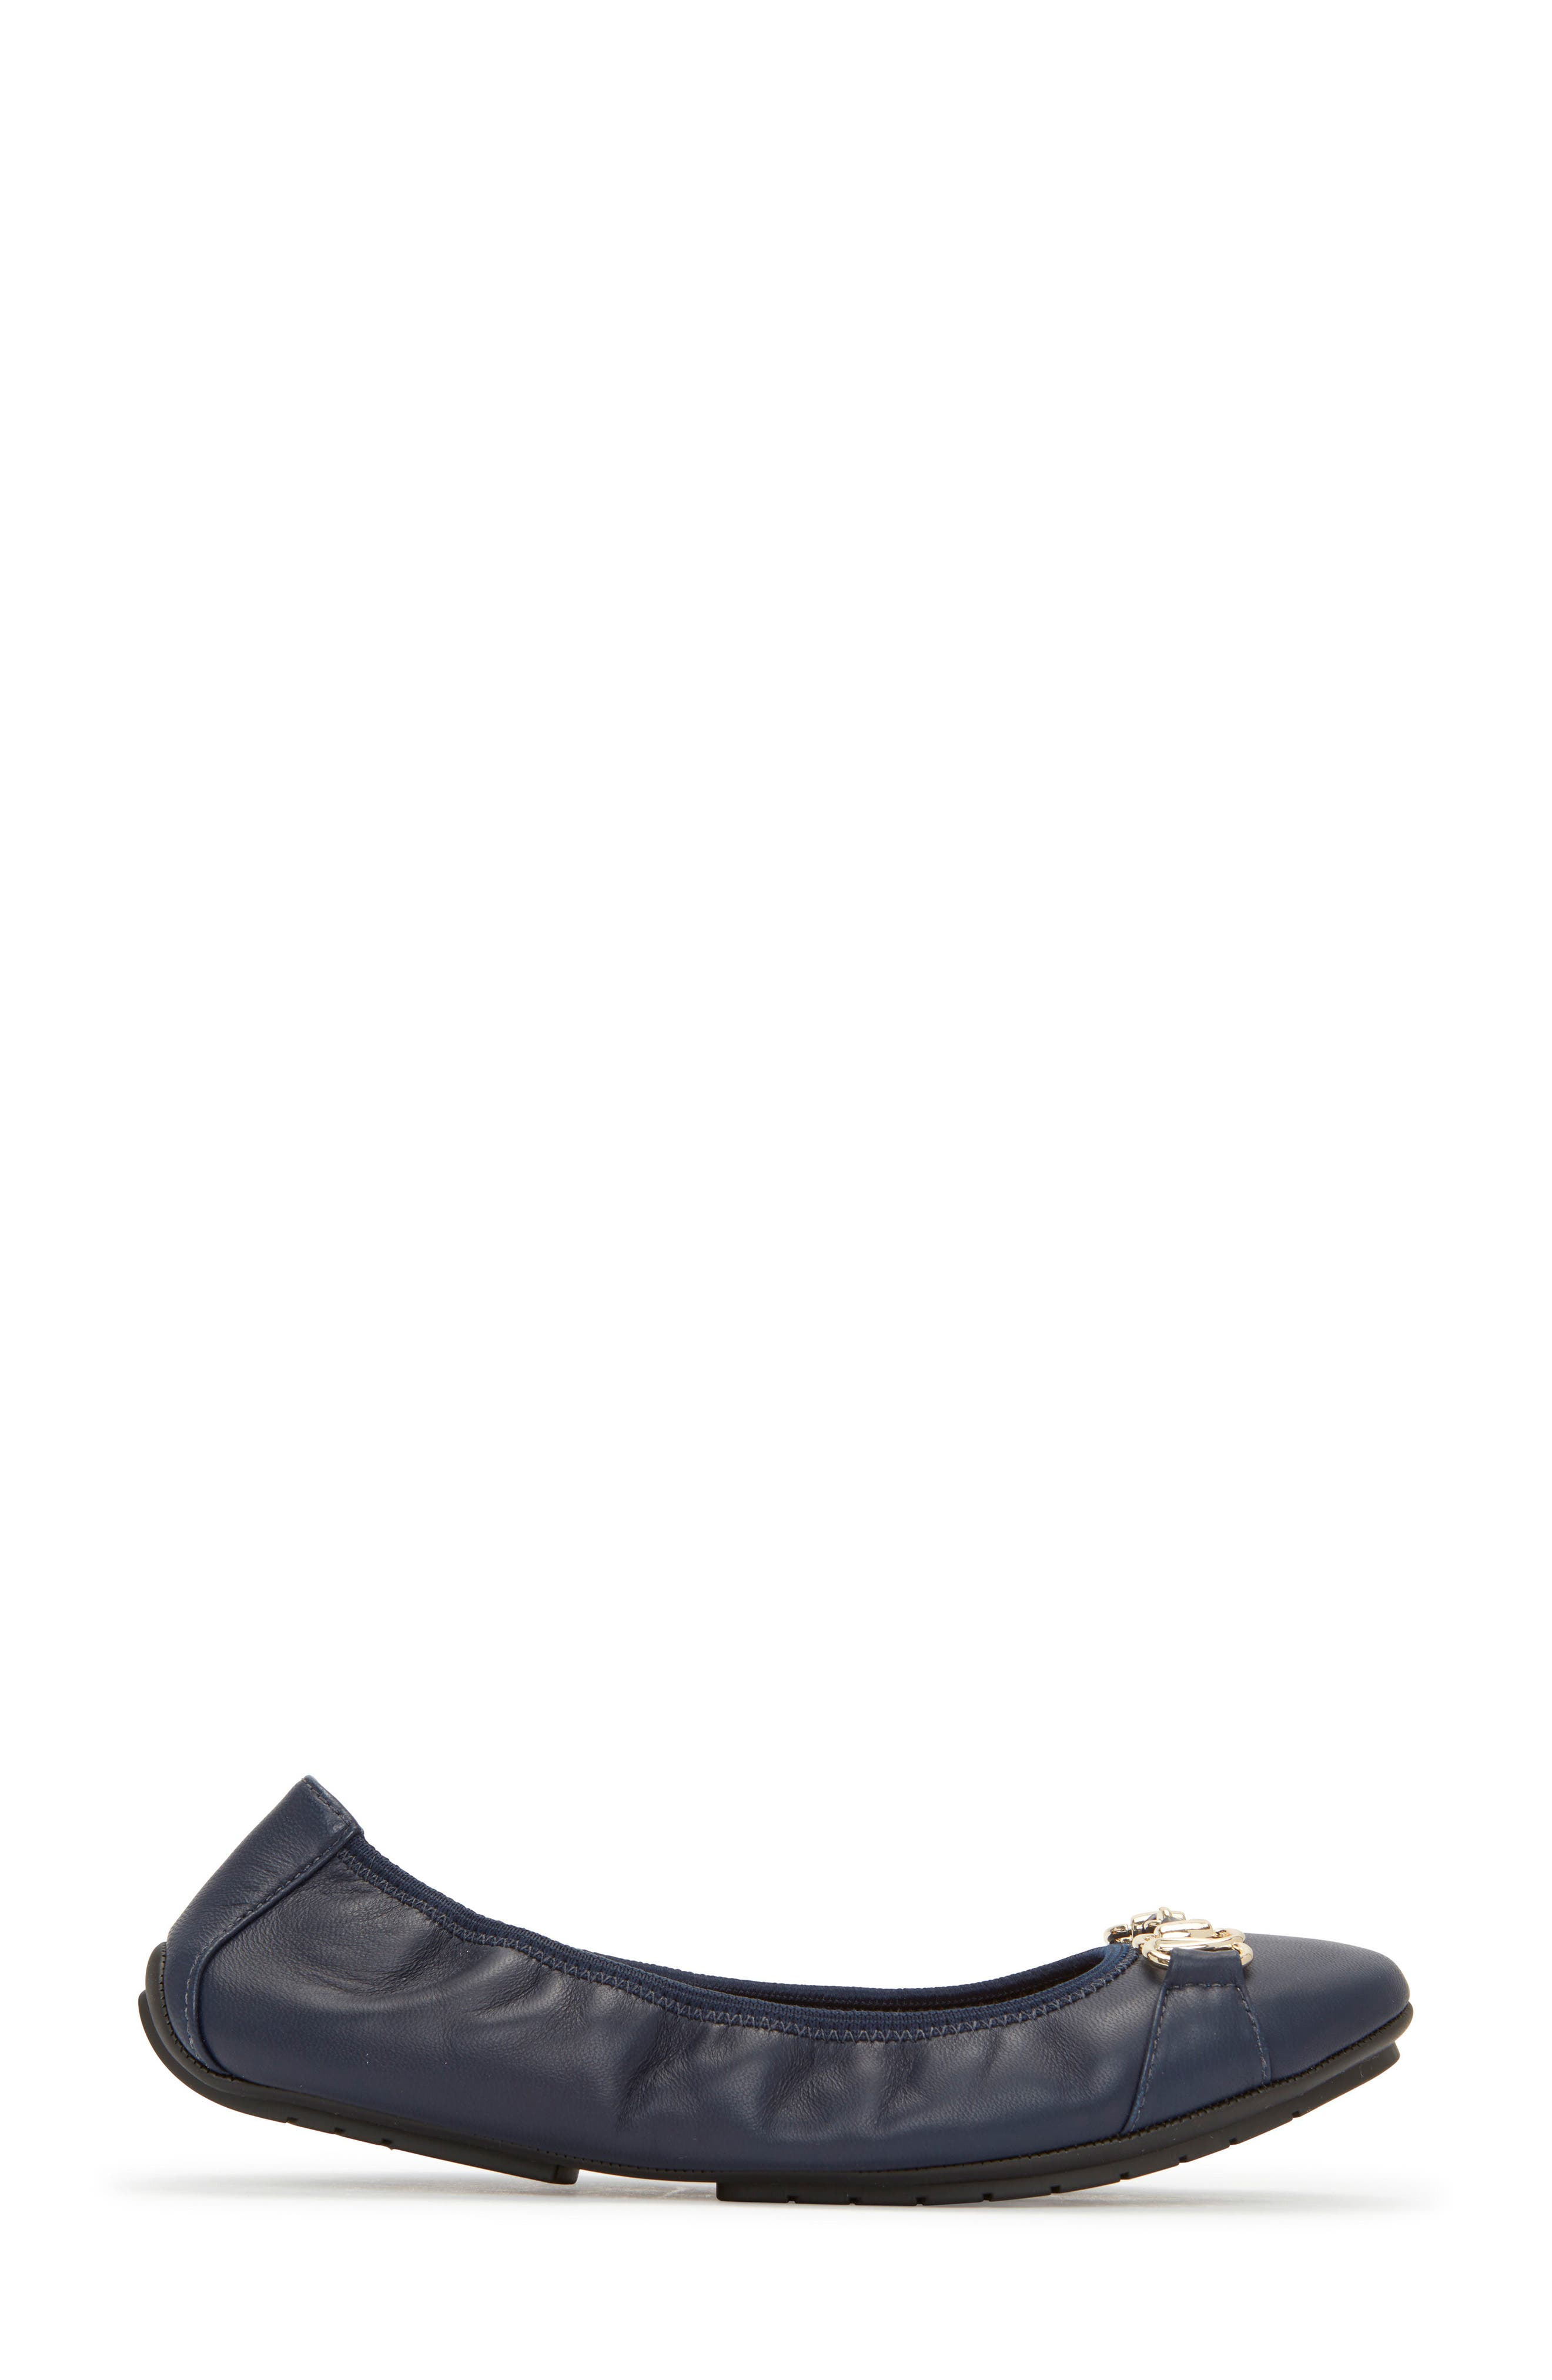 Olympia Skimmer Flat,                             Alternate thumbnail 8, color,                             Navy Leather